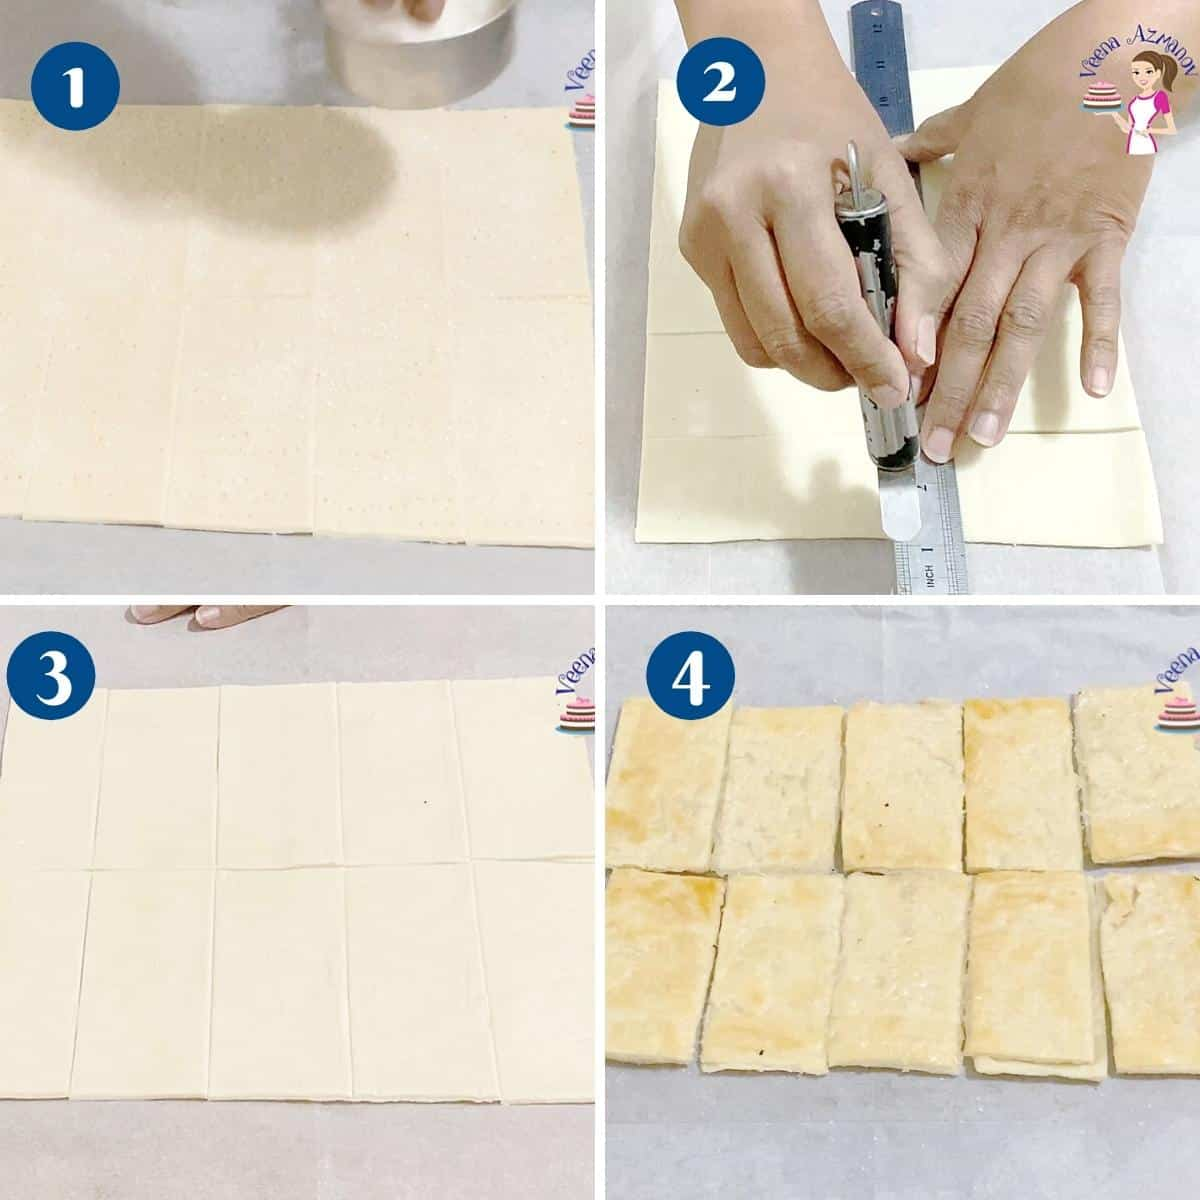 Progress pictures collage preparing puff pastry for Napoleon.